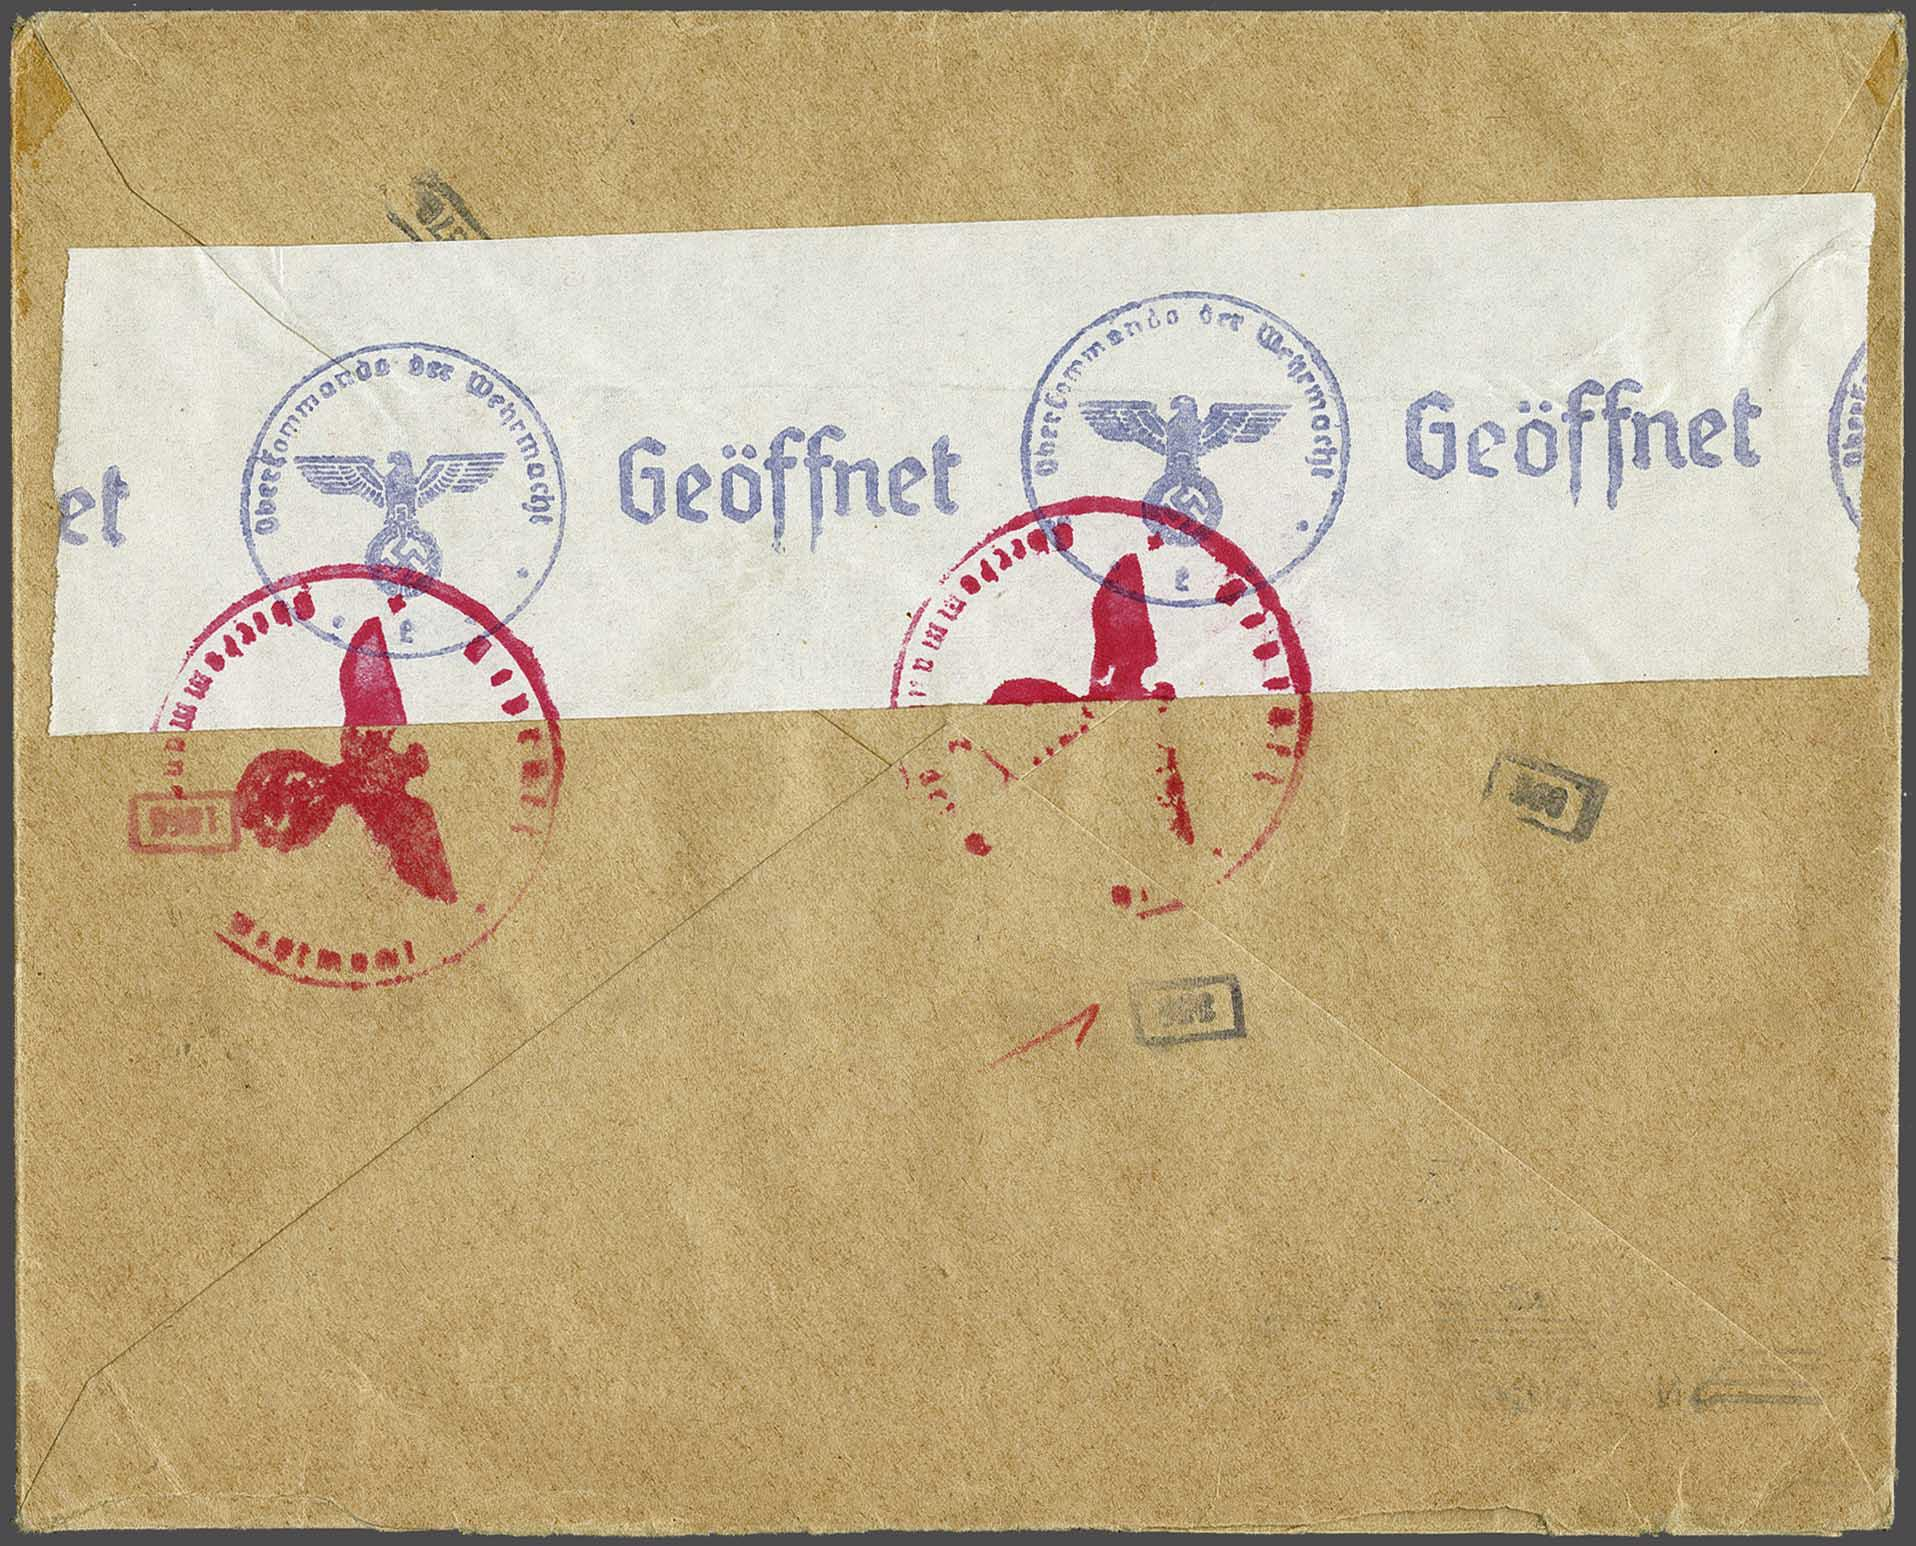 Lot 2824 - Netherlands and former colonies Netherlands -  Corinphila Veilingen Auction 244 -Netherlands and former colonies, WW2 Postal History, Bosnia, German and British colonies, Egypt. - Day 3